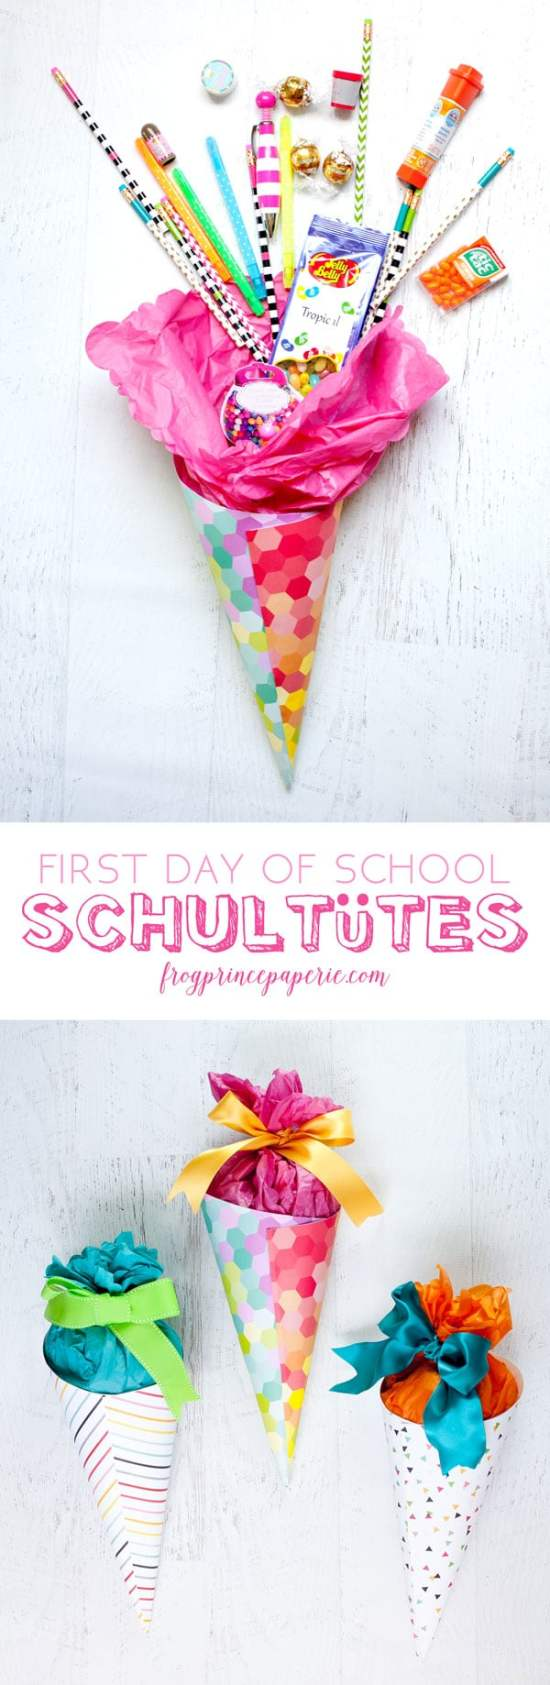 First-day-of-school-schultute1